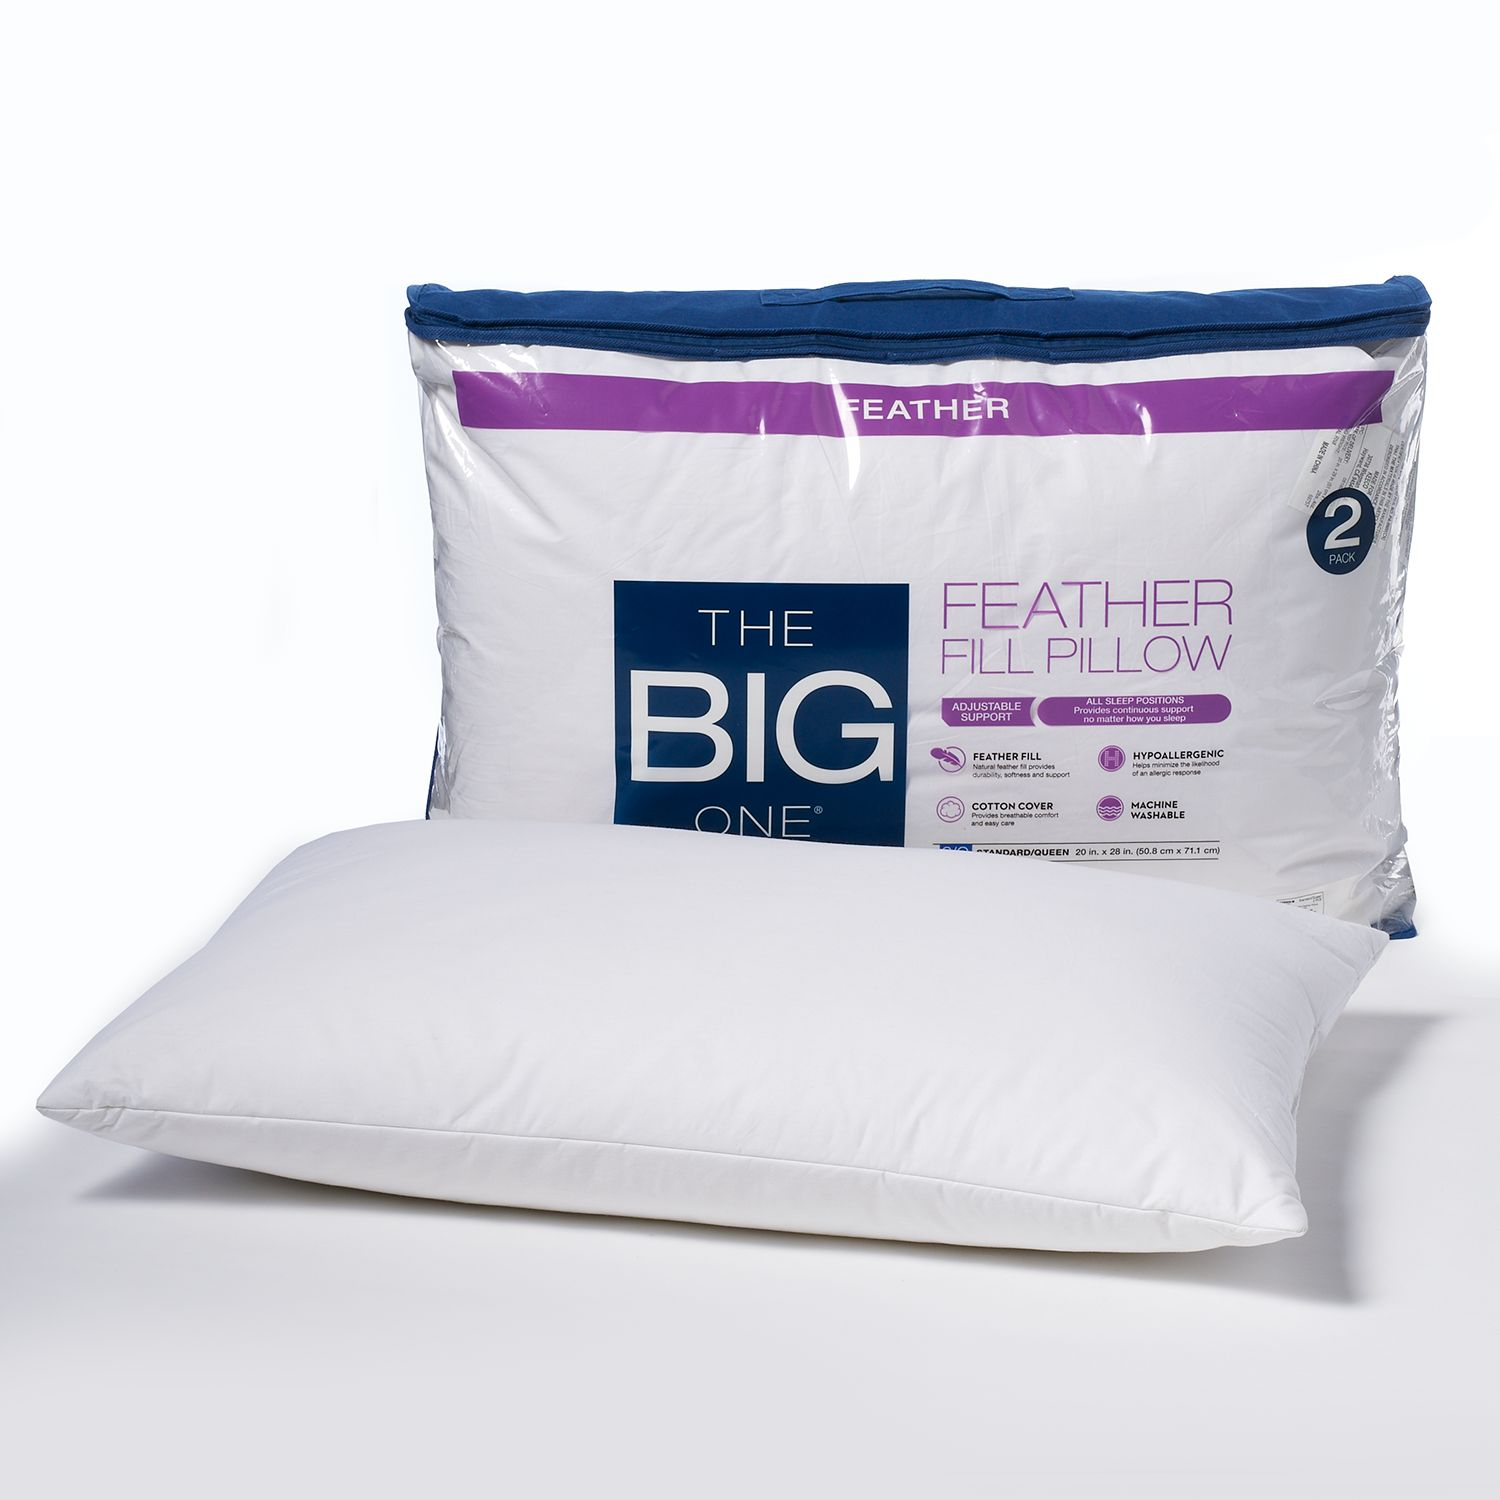 the big one 2pack feather pillow regular